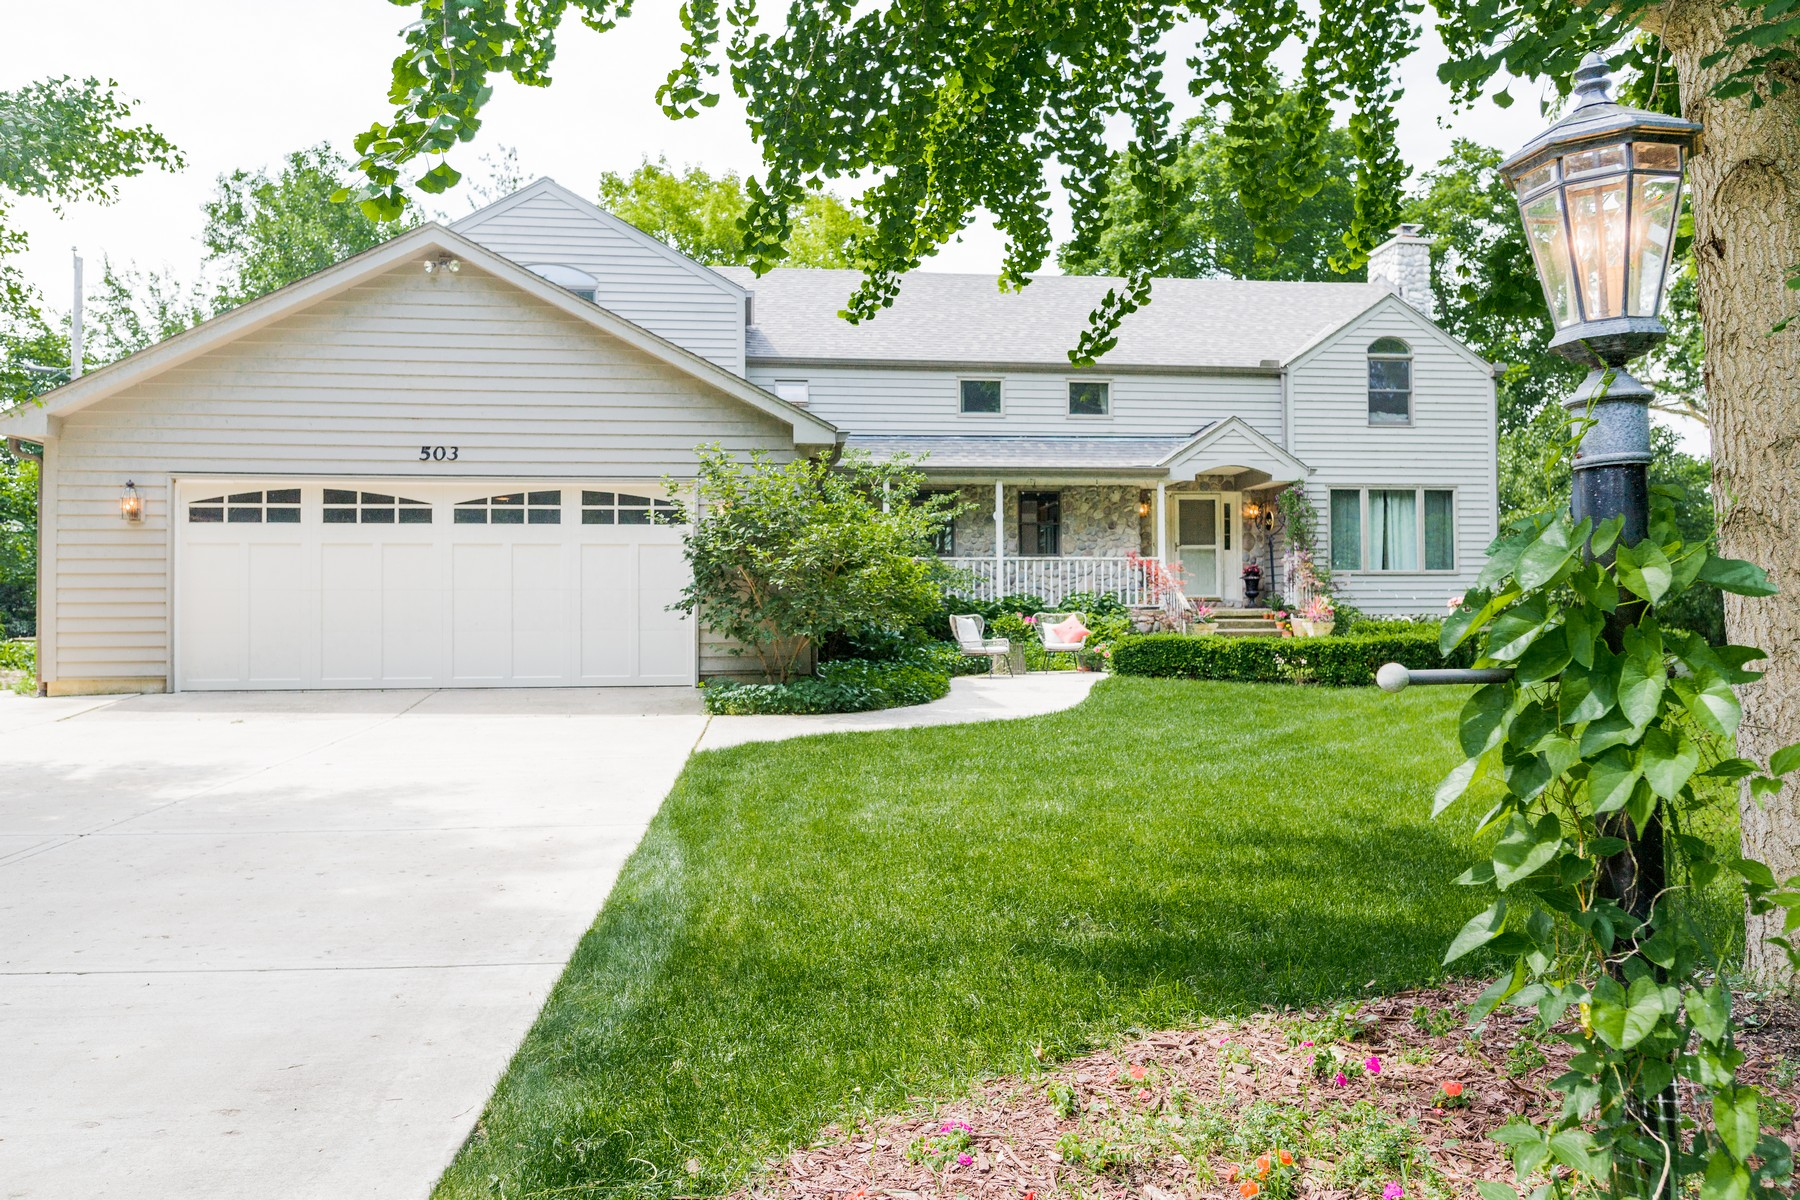 Single Family Home for Sale at Live Waterfront! 503 E Lake Shore Drive Tower Lakes, Illinois 60010 United States